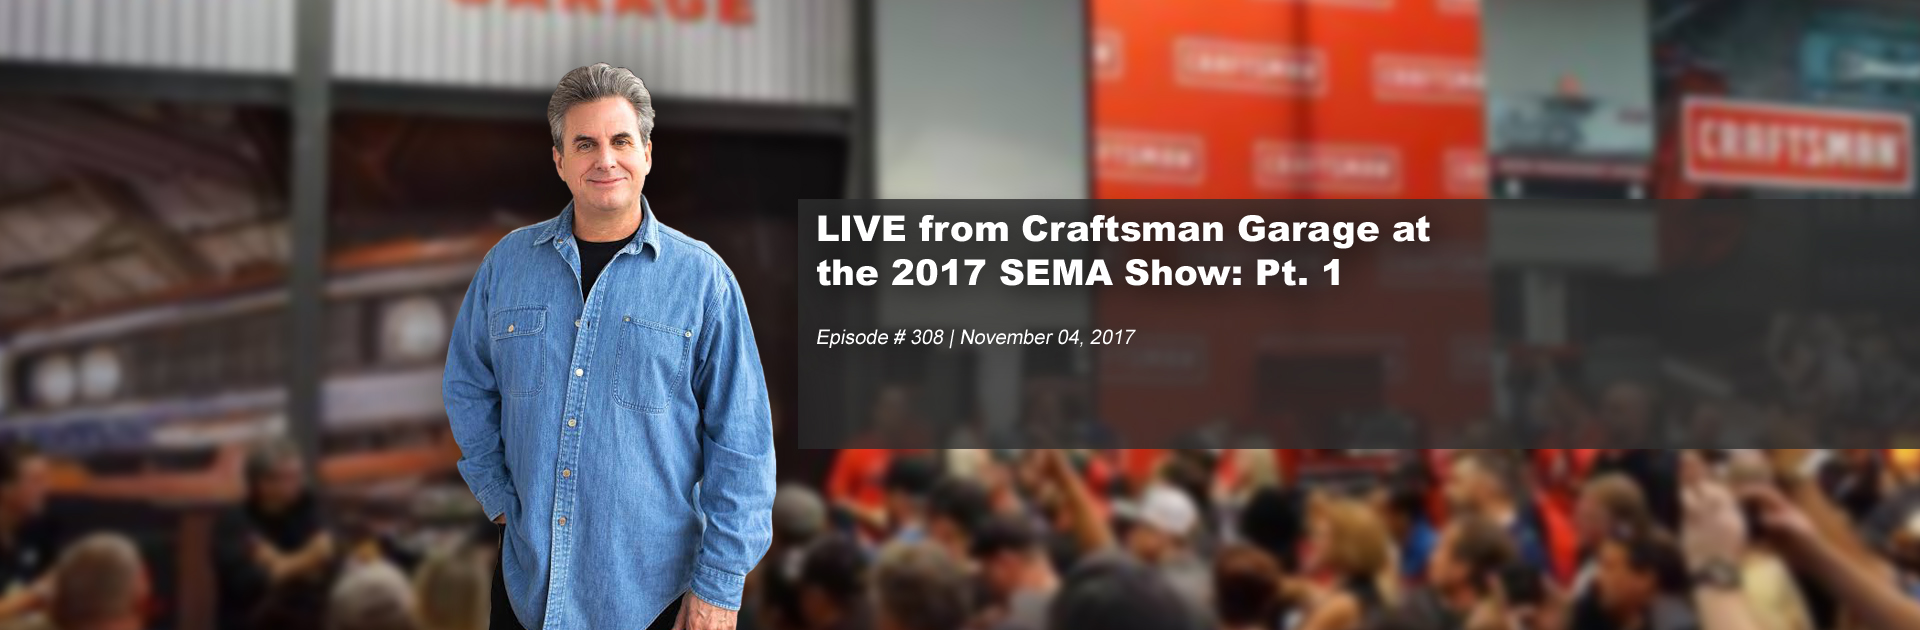 Live From Craftsman Garage At The 2017 Sema Show Pt 1 308